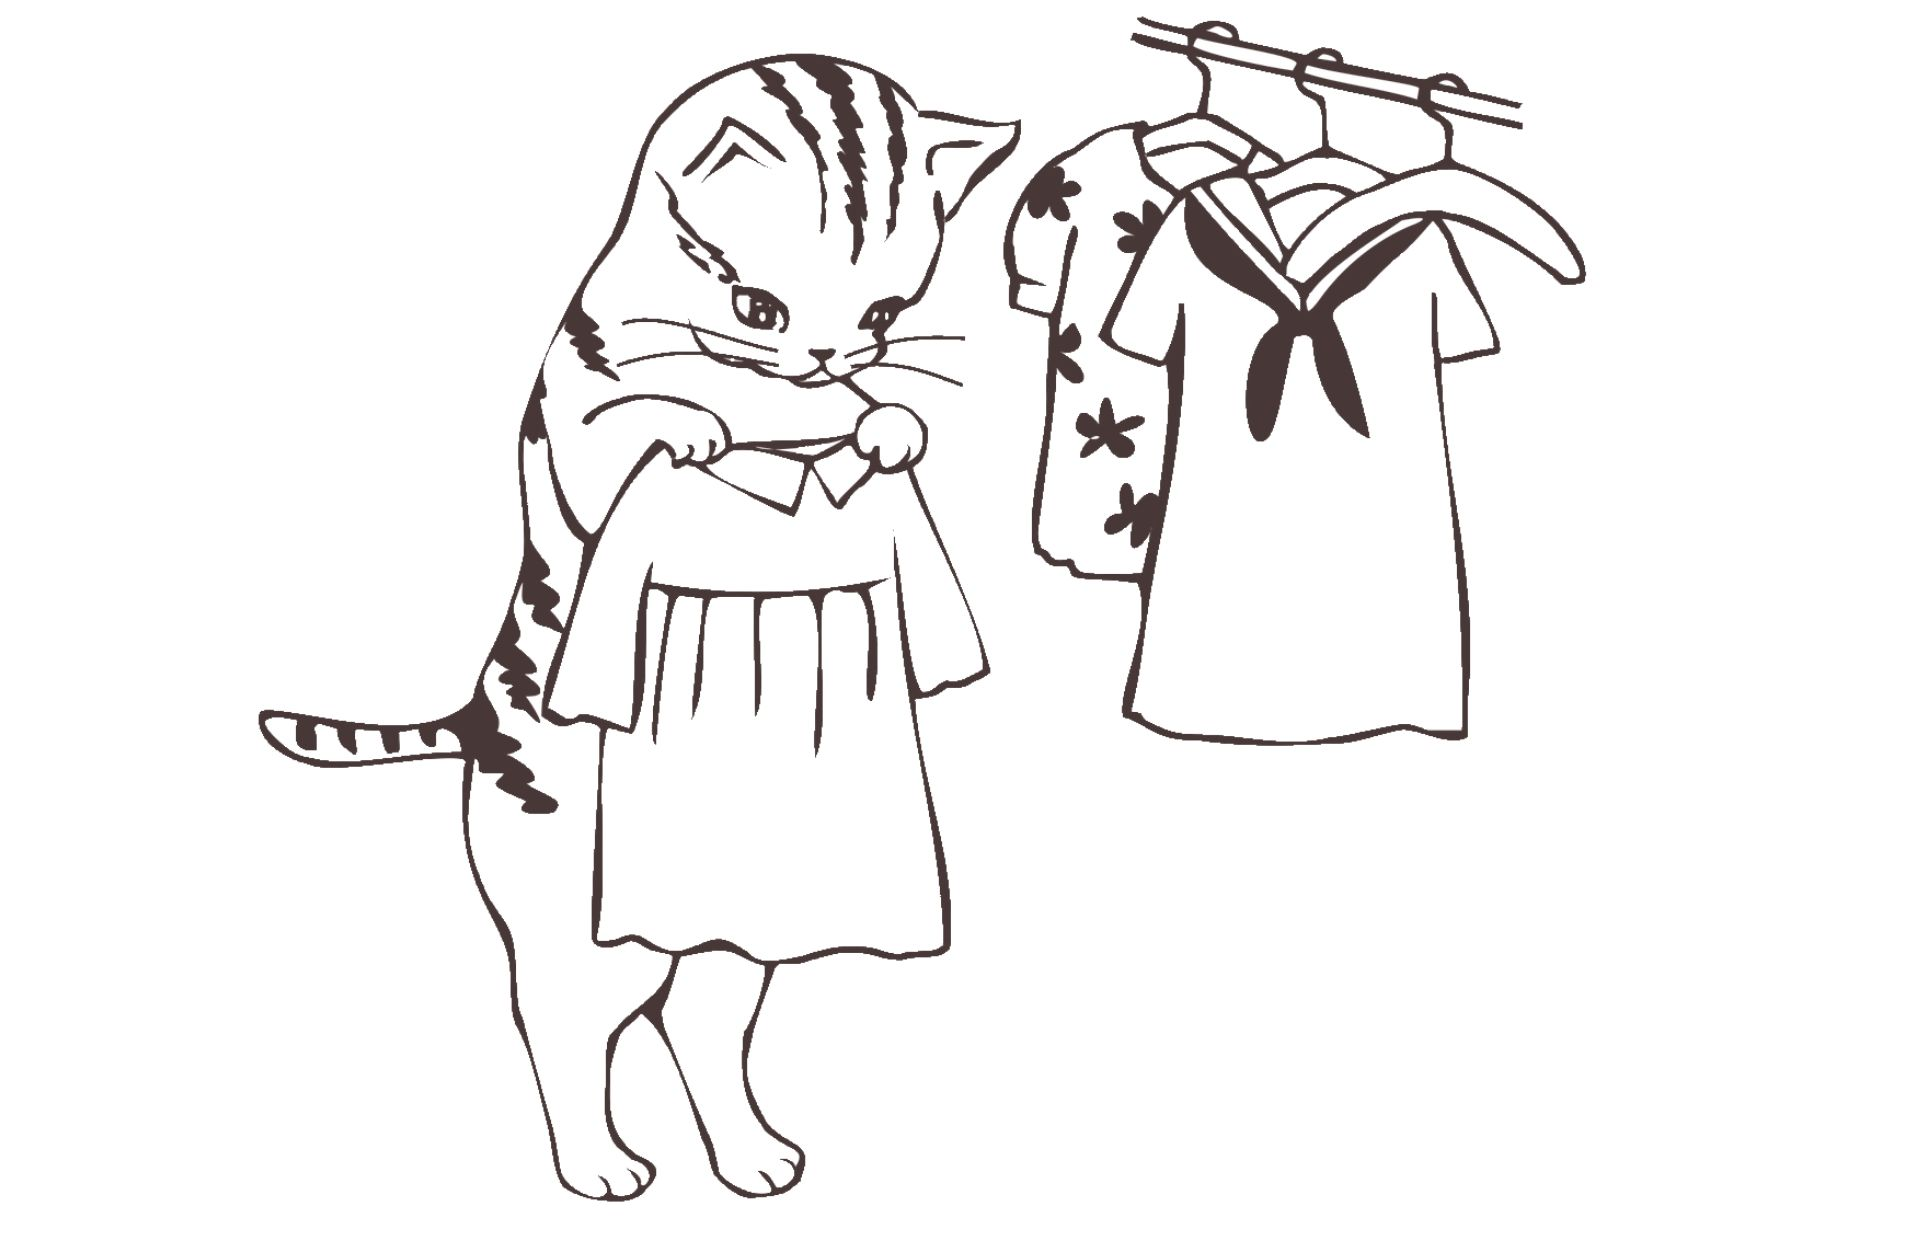 Cat holding up a dress by a rail of clothes